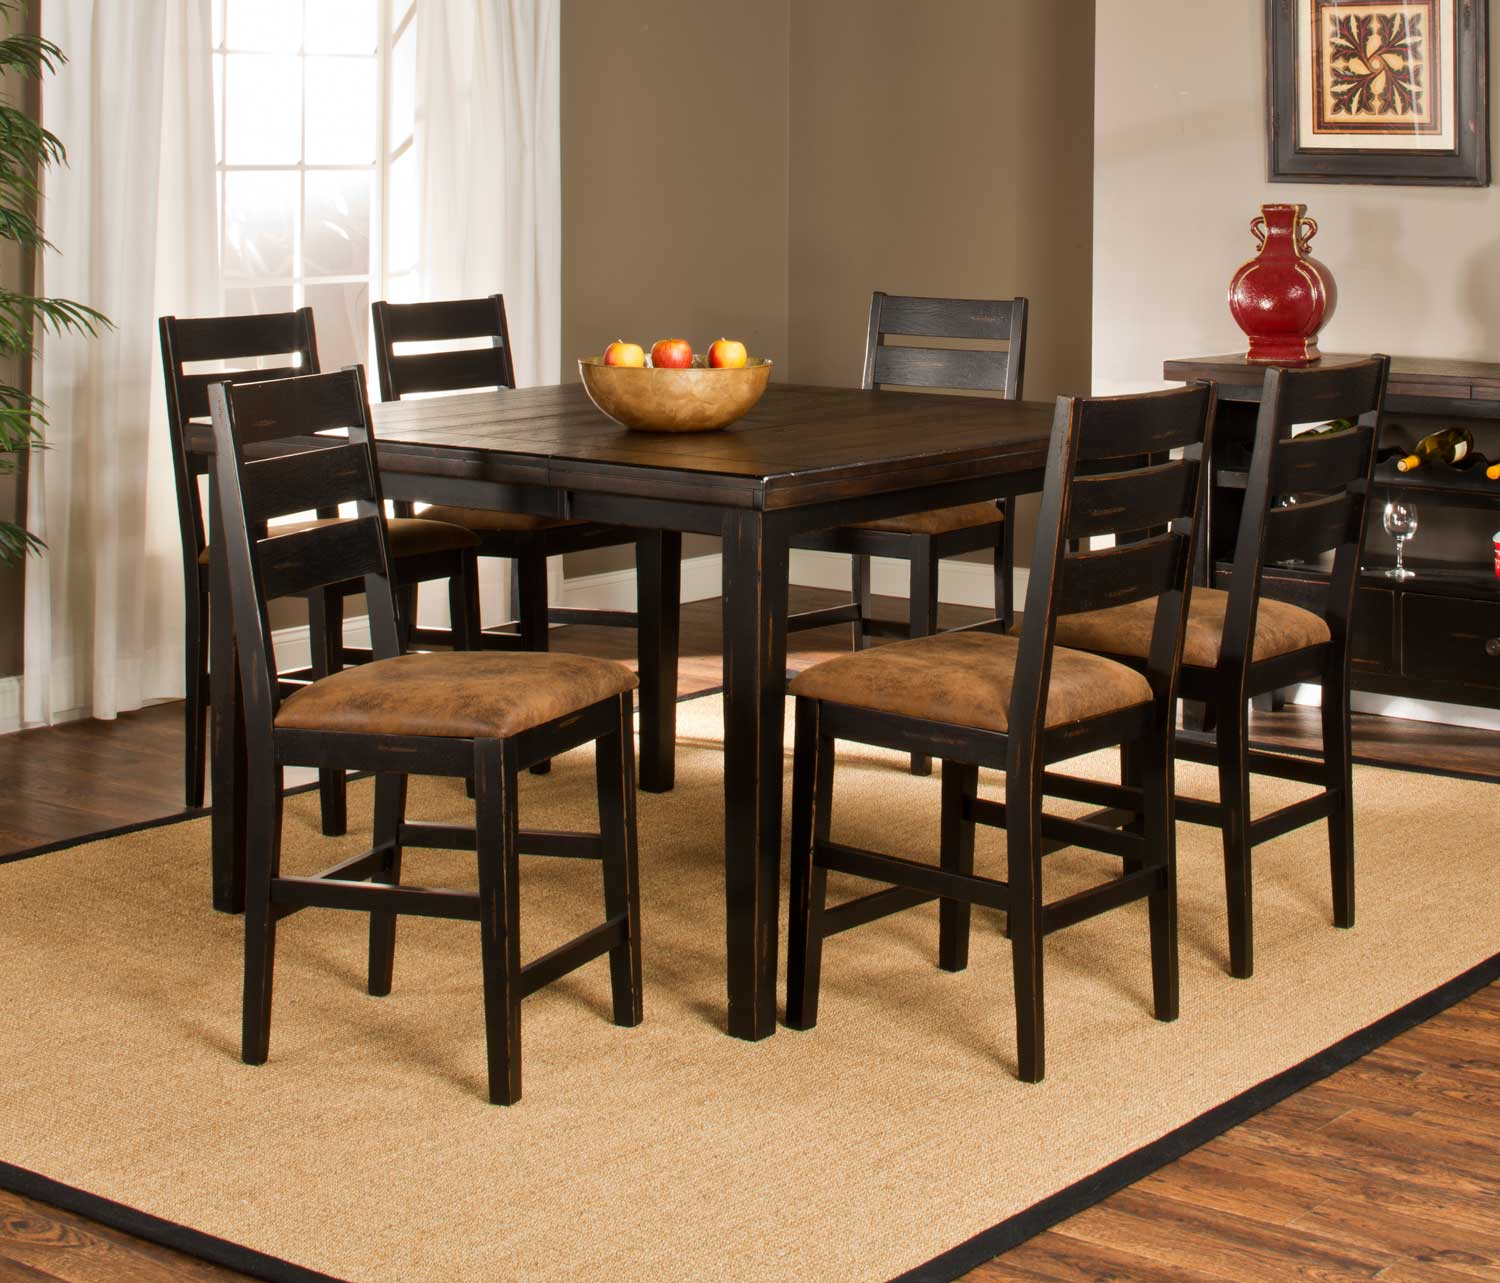 Hillsdale Killarney Counter Height 7 Piece Dining Set   Black/ Antique Brown